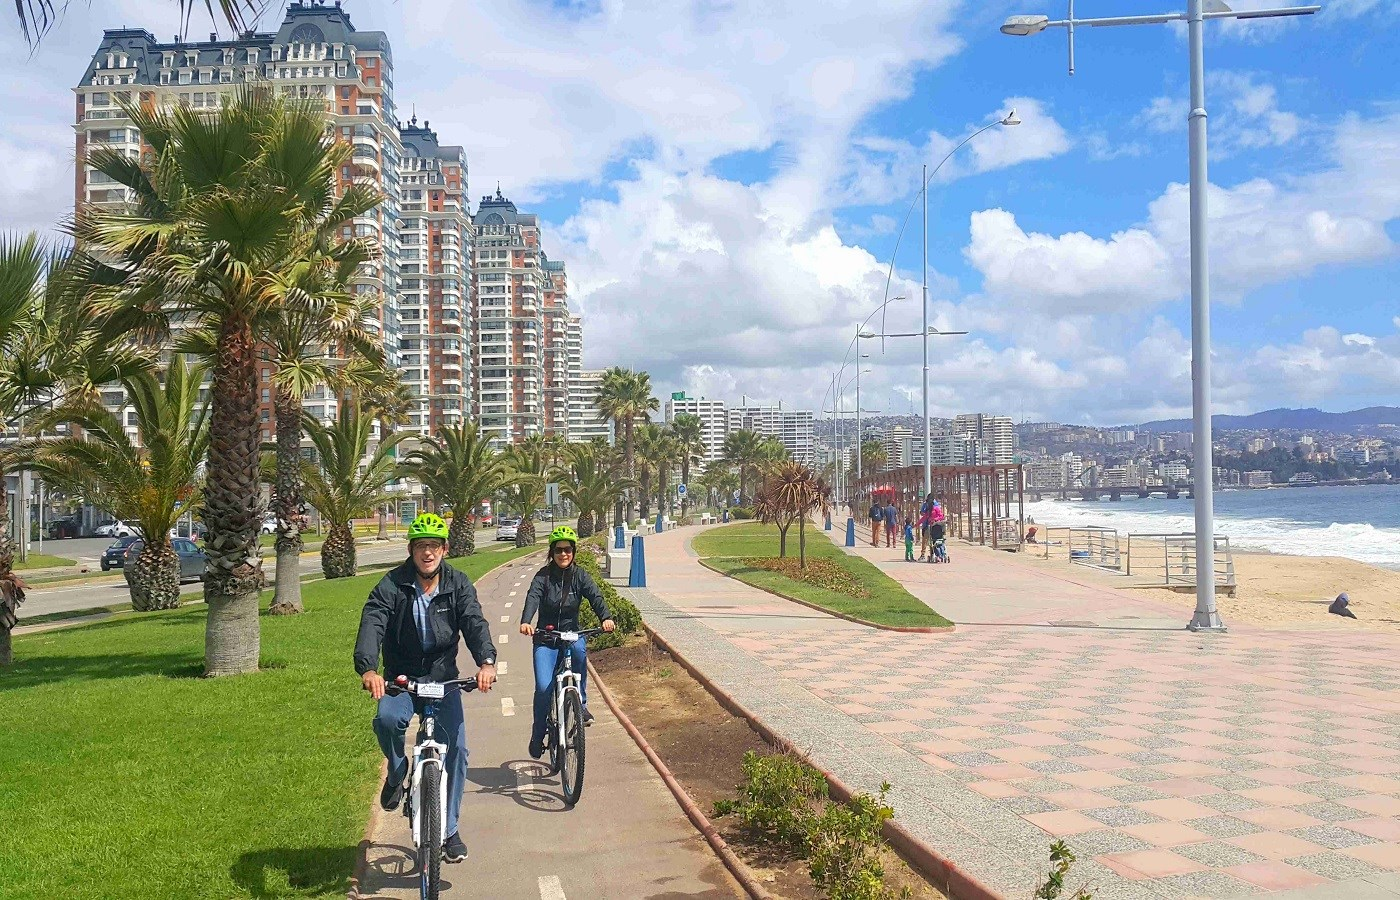 Private Bike Tour Concon - Viña del Mar - Valparaiso